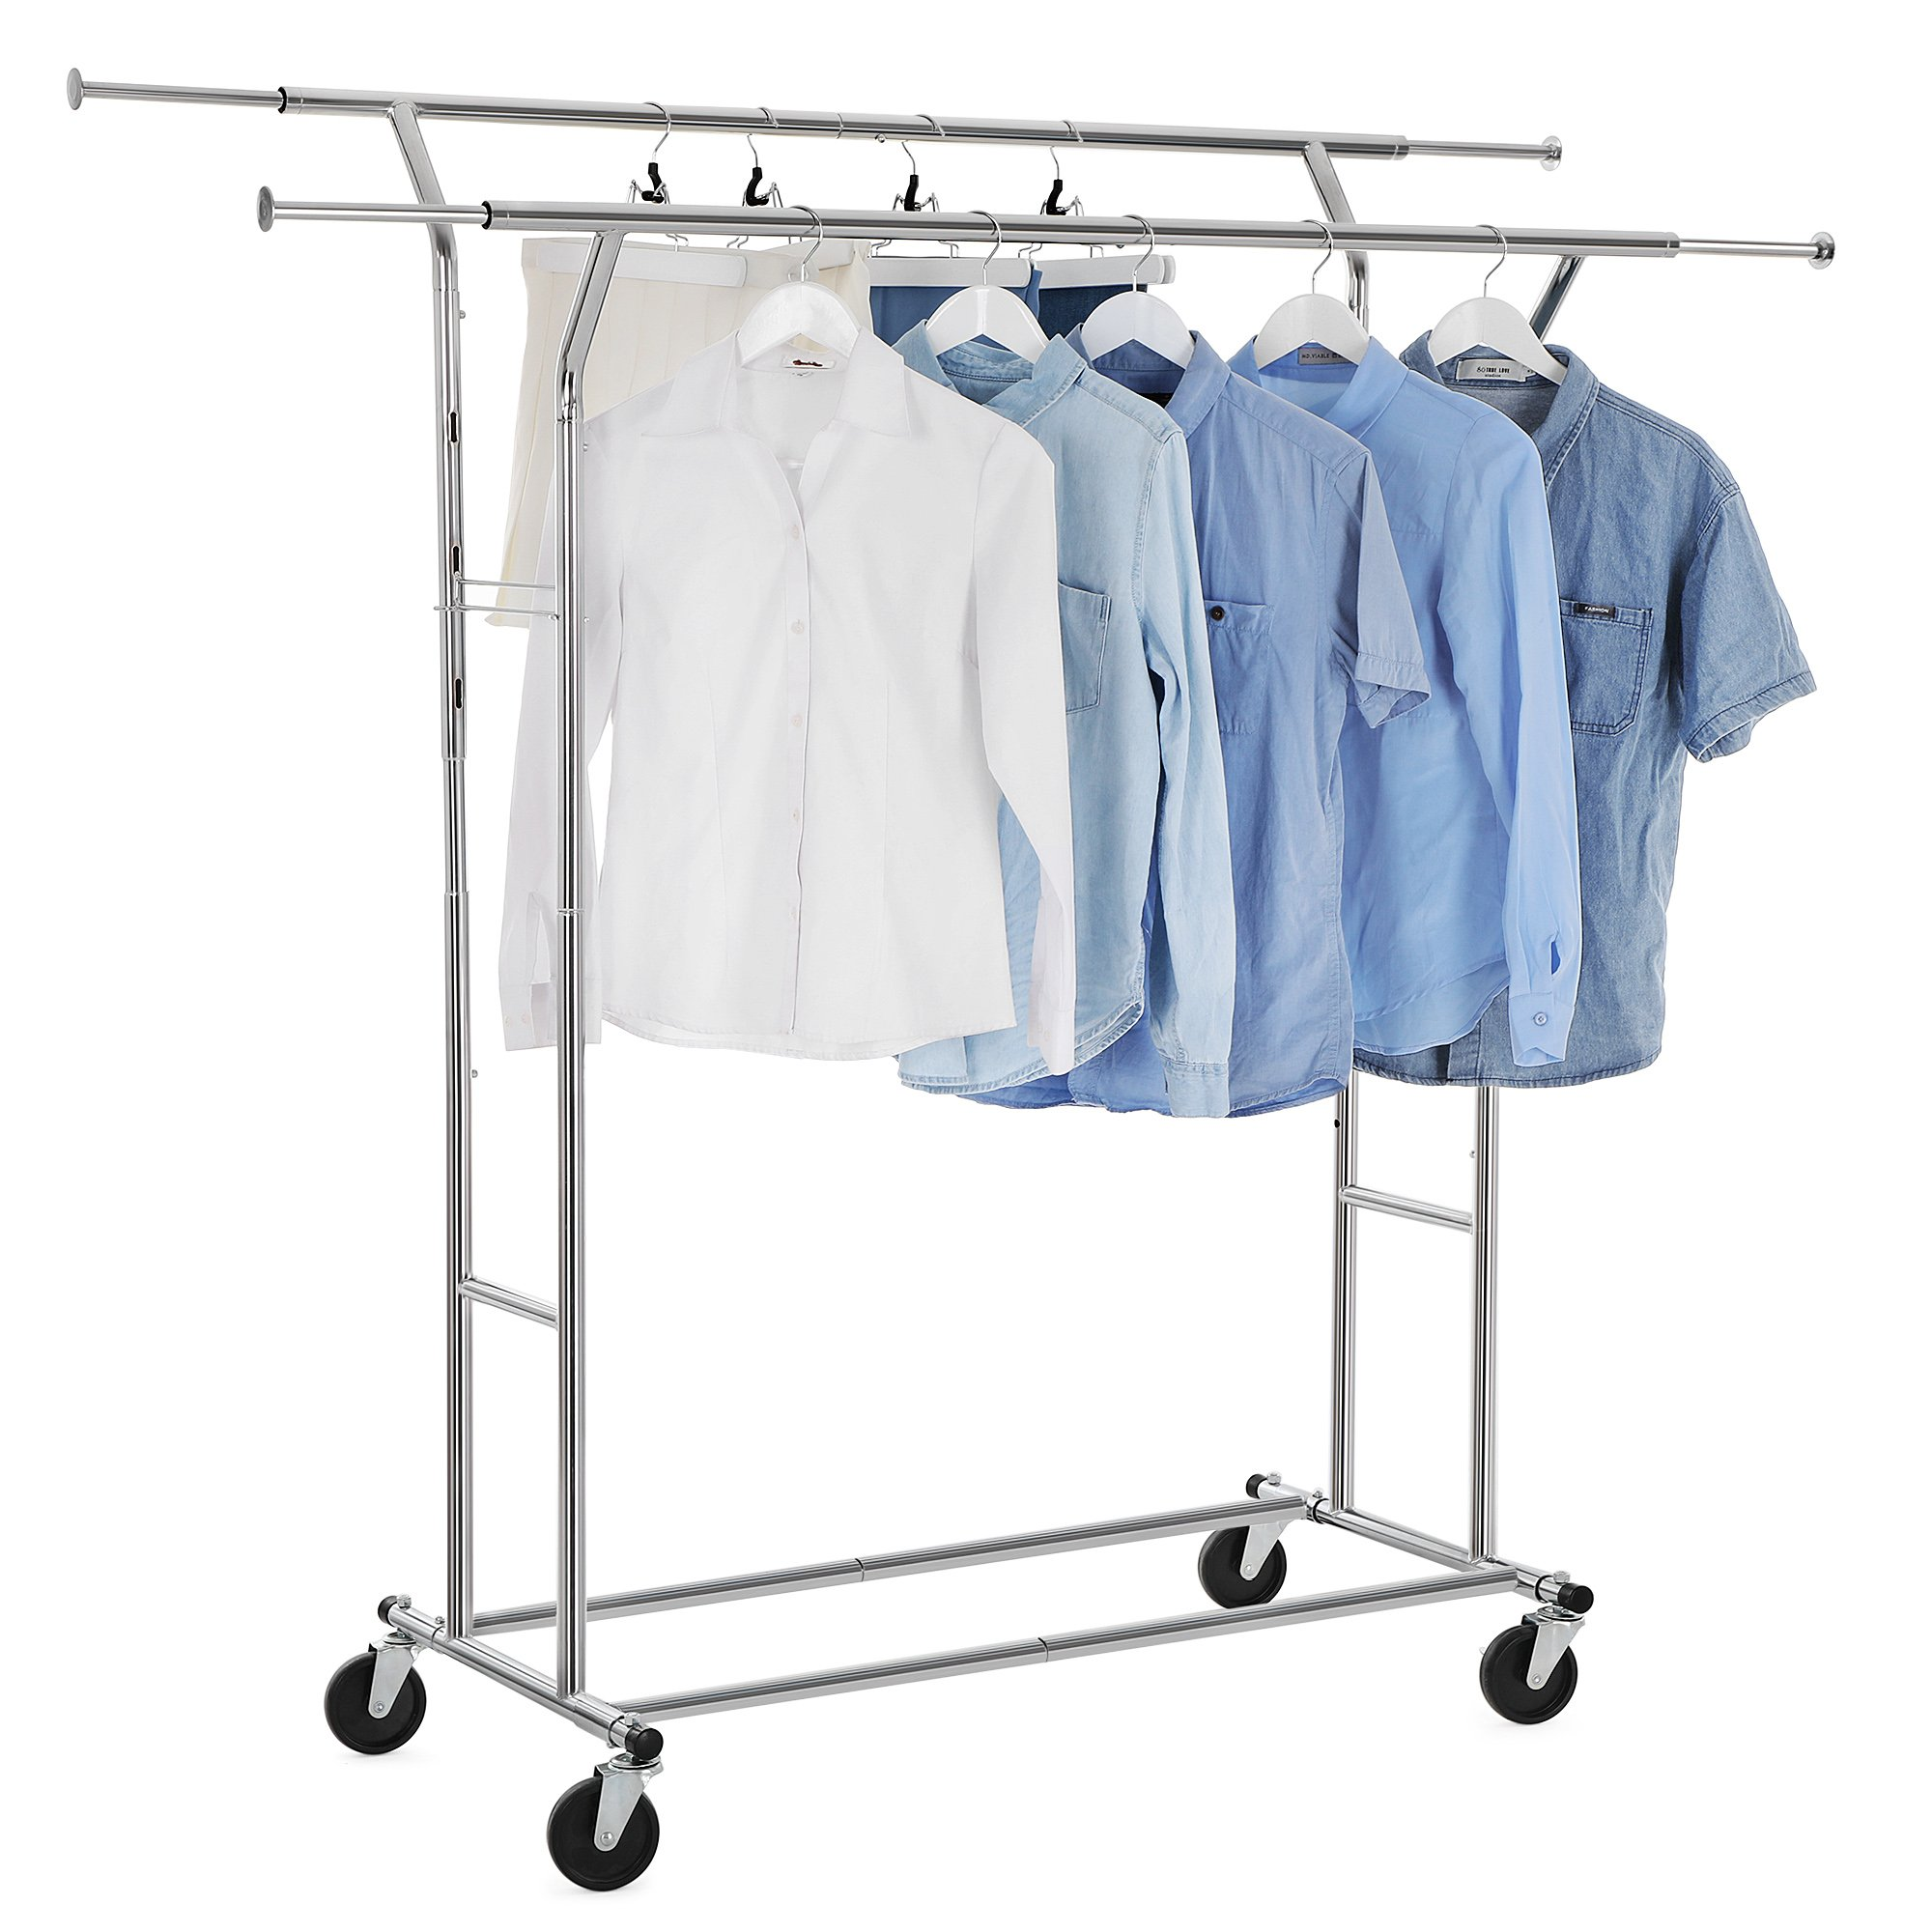 SONGMICS Commercial Grade Double Rail Garment Clothing Rack for Boutiques Rolling Hanging Rack for Clothes Chrome ULLR23C